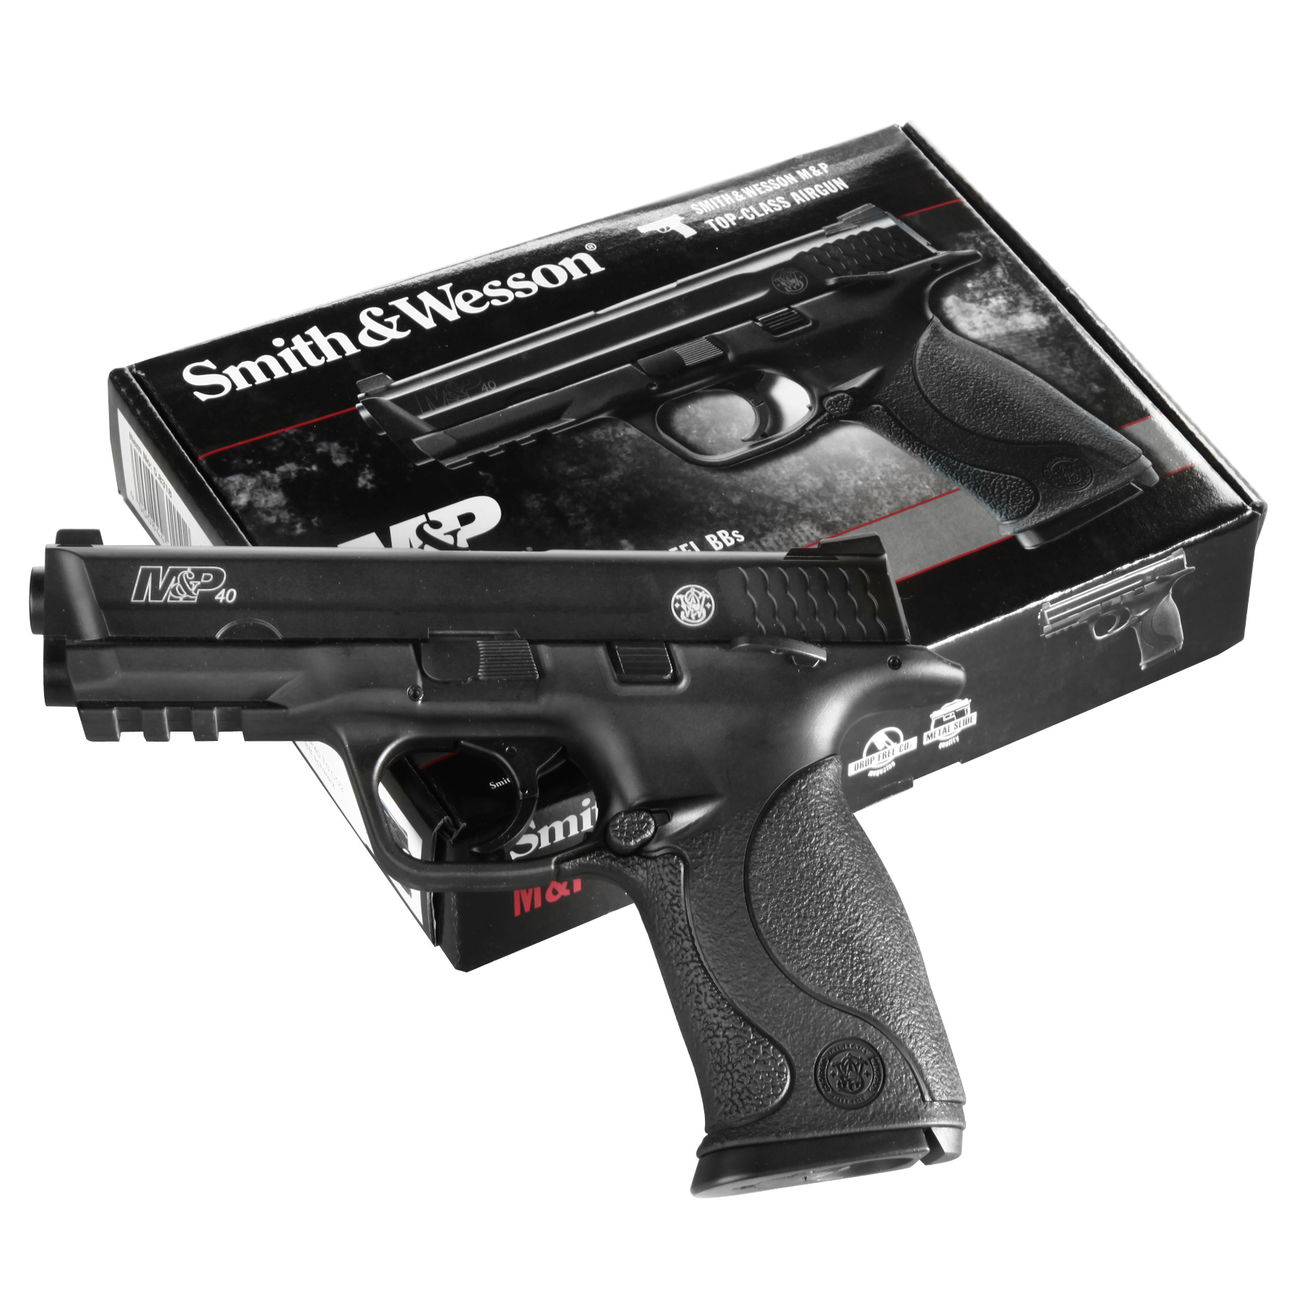 Smith & Wesson M&P40 TS CO2 Luftpistole Blow Back 4,5mm Stahl BB brüniert 6